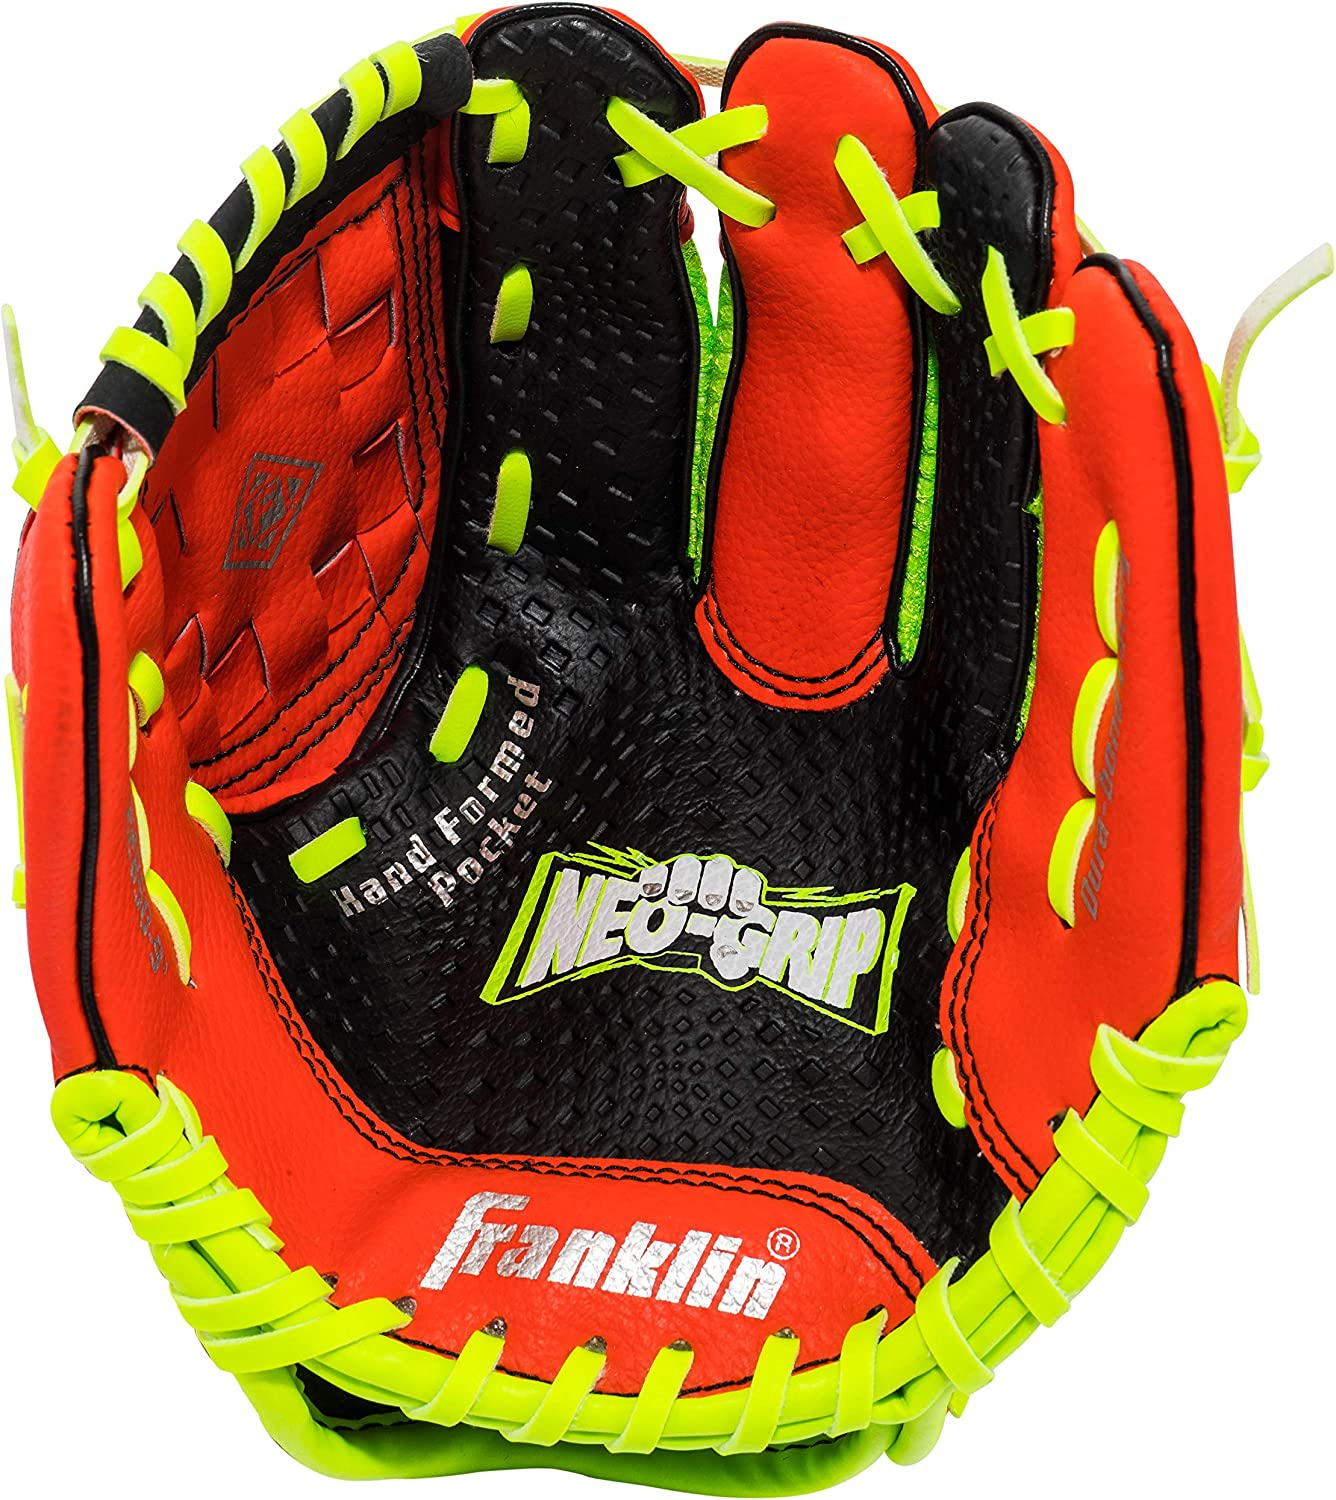 9.0 Inch Franklin Sports Teeball Glove Left and Right Handed Youth Fielding Glove Ready To Play Glove with Ball Synthetic Leather Baseball Glove Neo-Grip